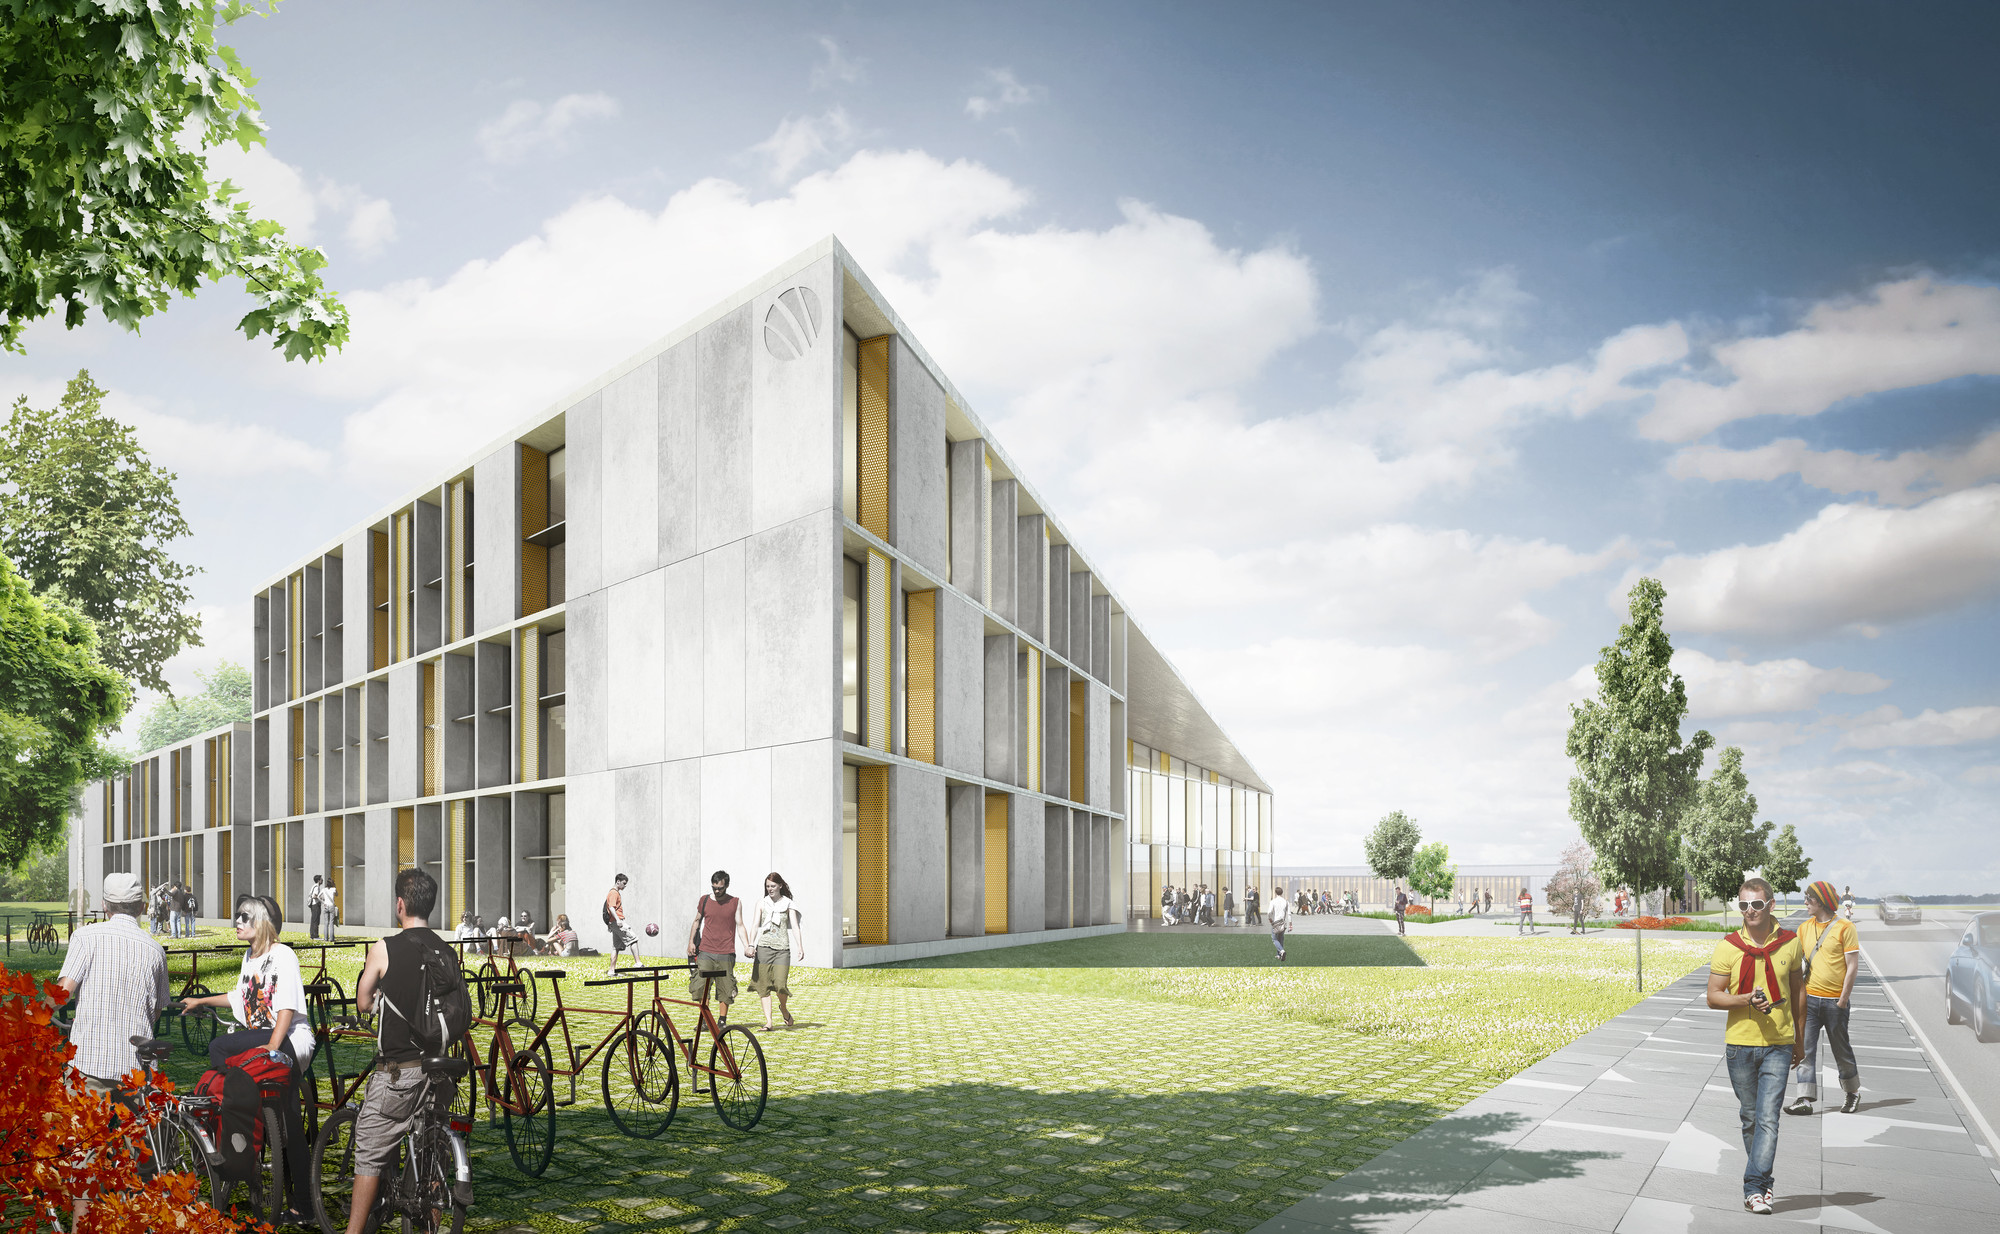 C F M 248 Ller Selected To Design Vocational School In